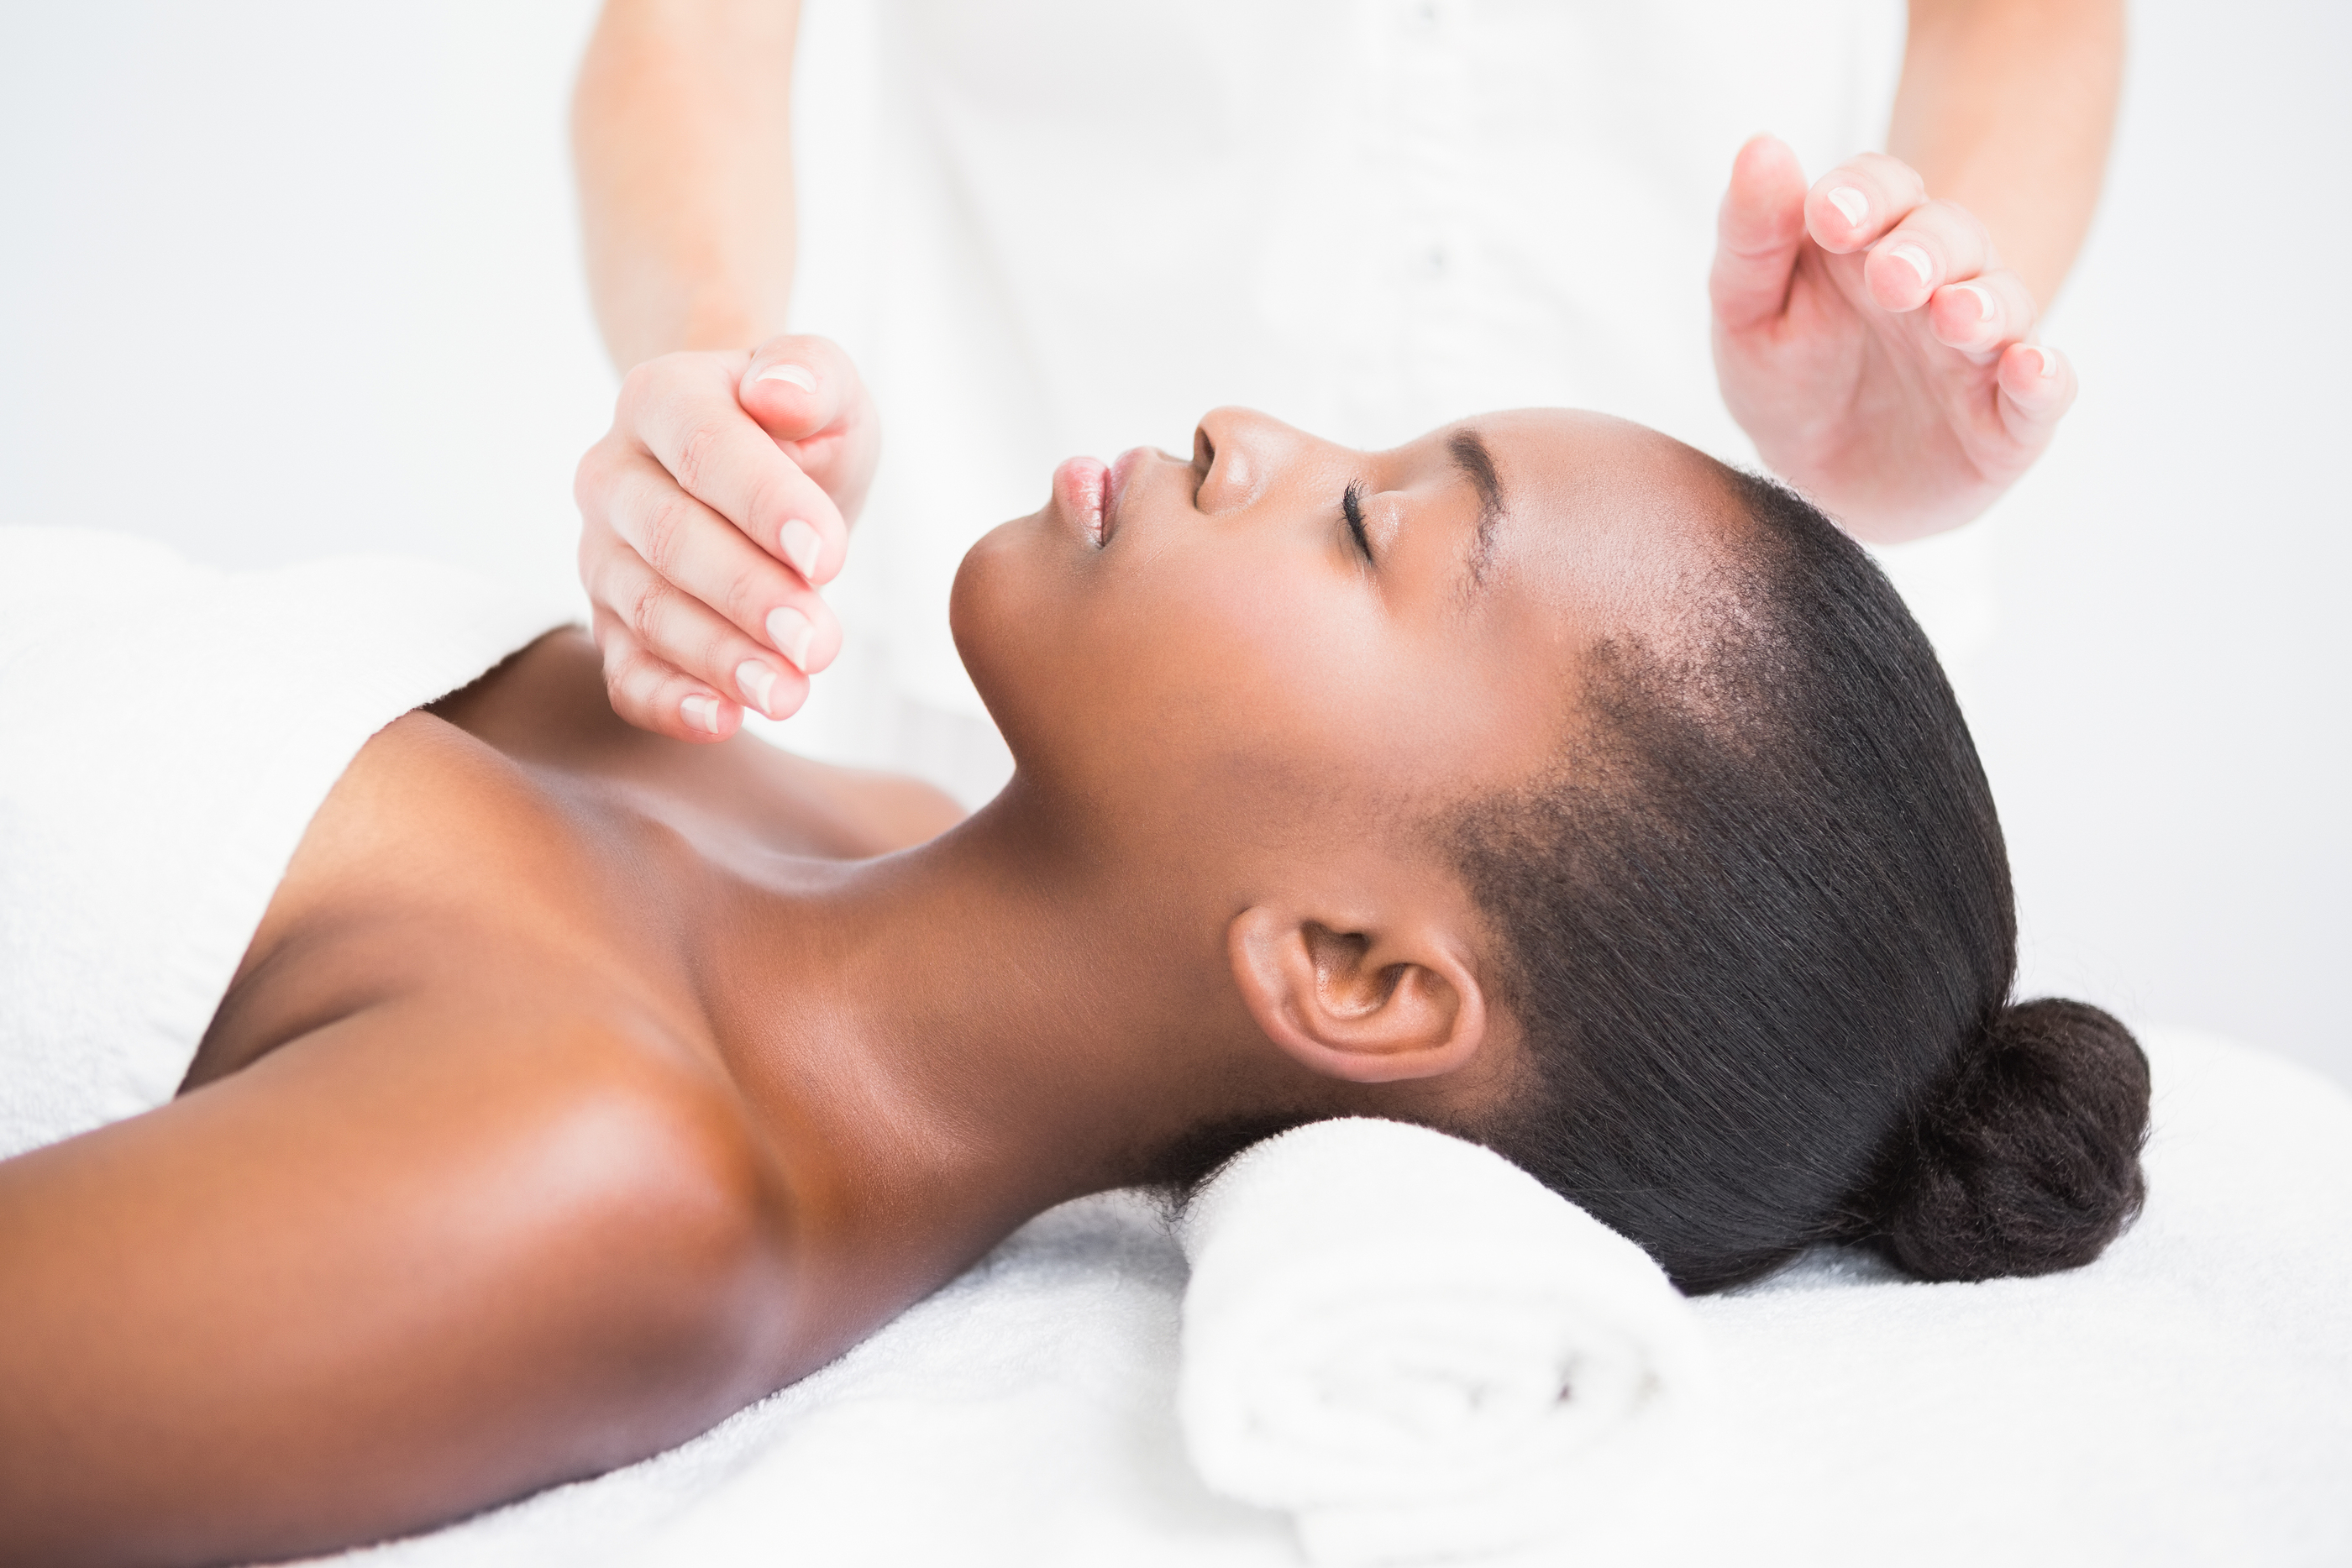 Pretty woman enjoying a reiki technique at the health spa.jpg